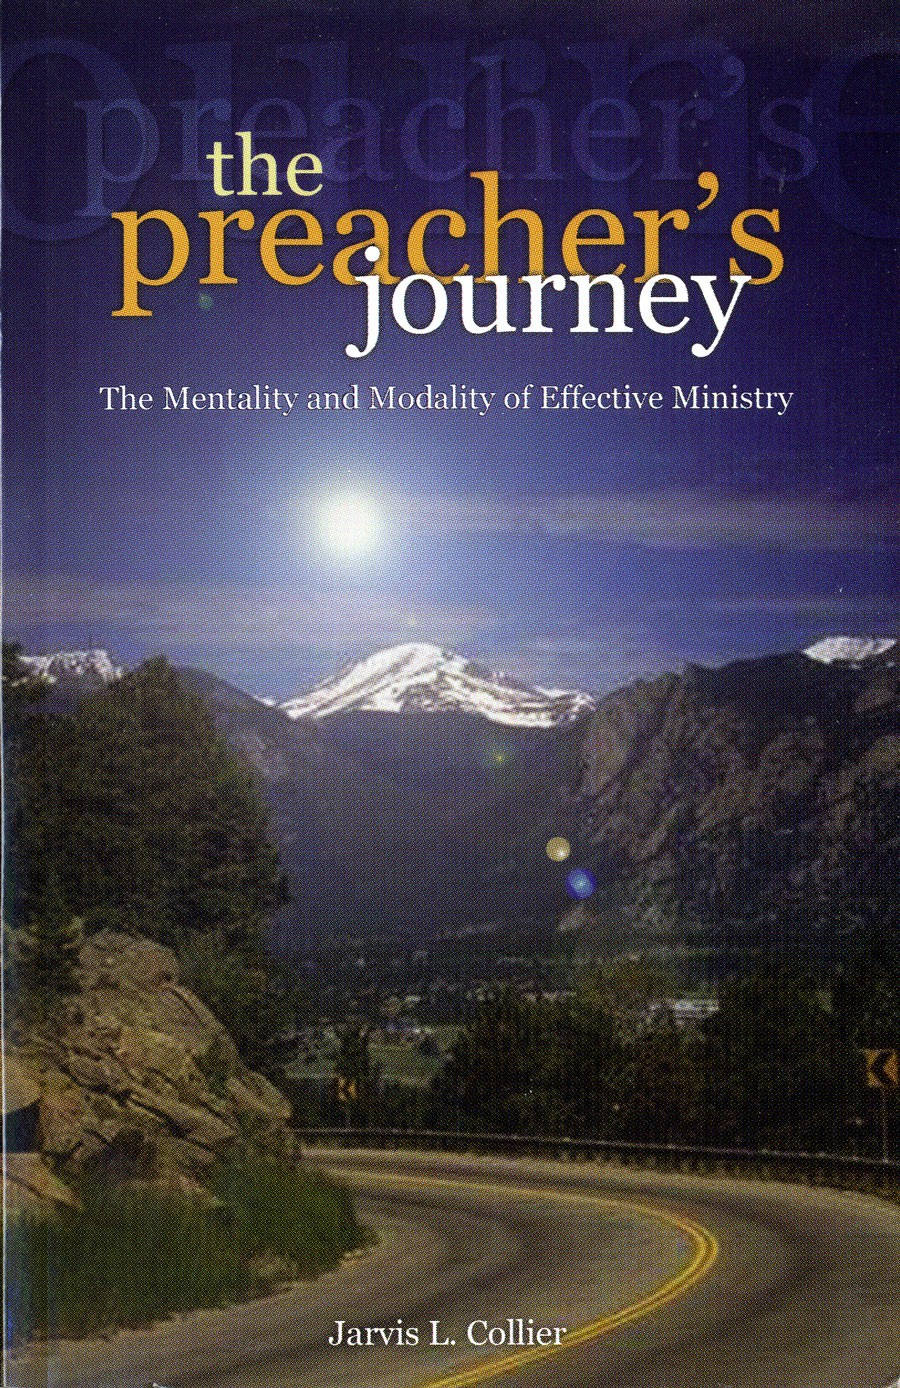 The Preacher's Journey: The Mentality and Modality of Effective Ministry